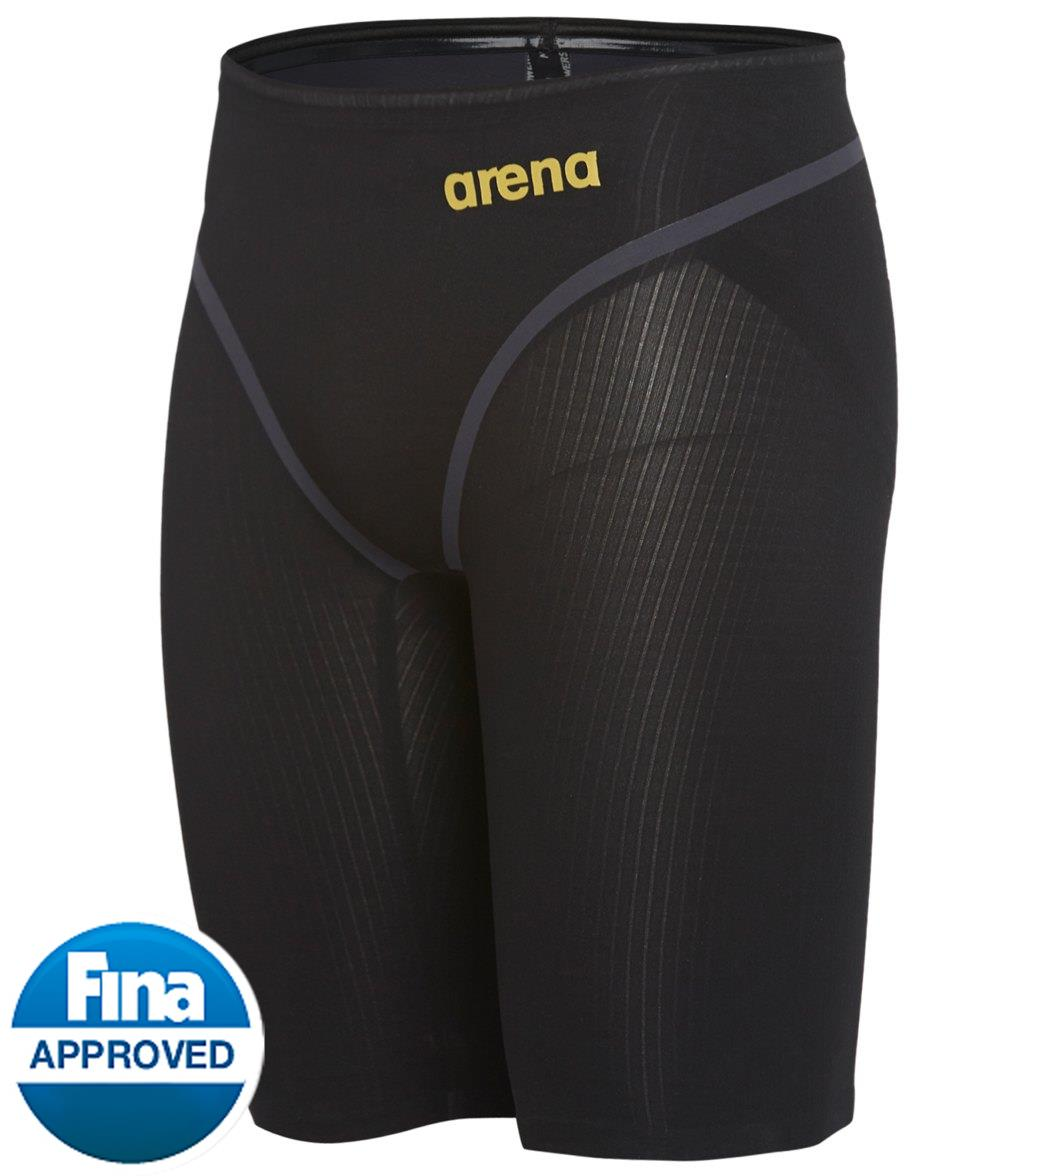 Arena Carbon Core FX men's tech suit